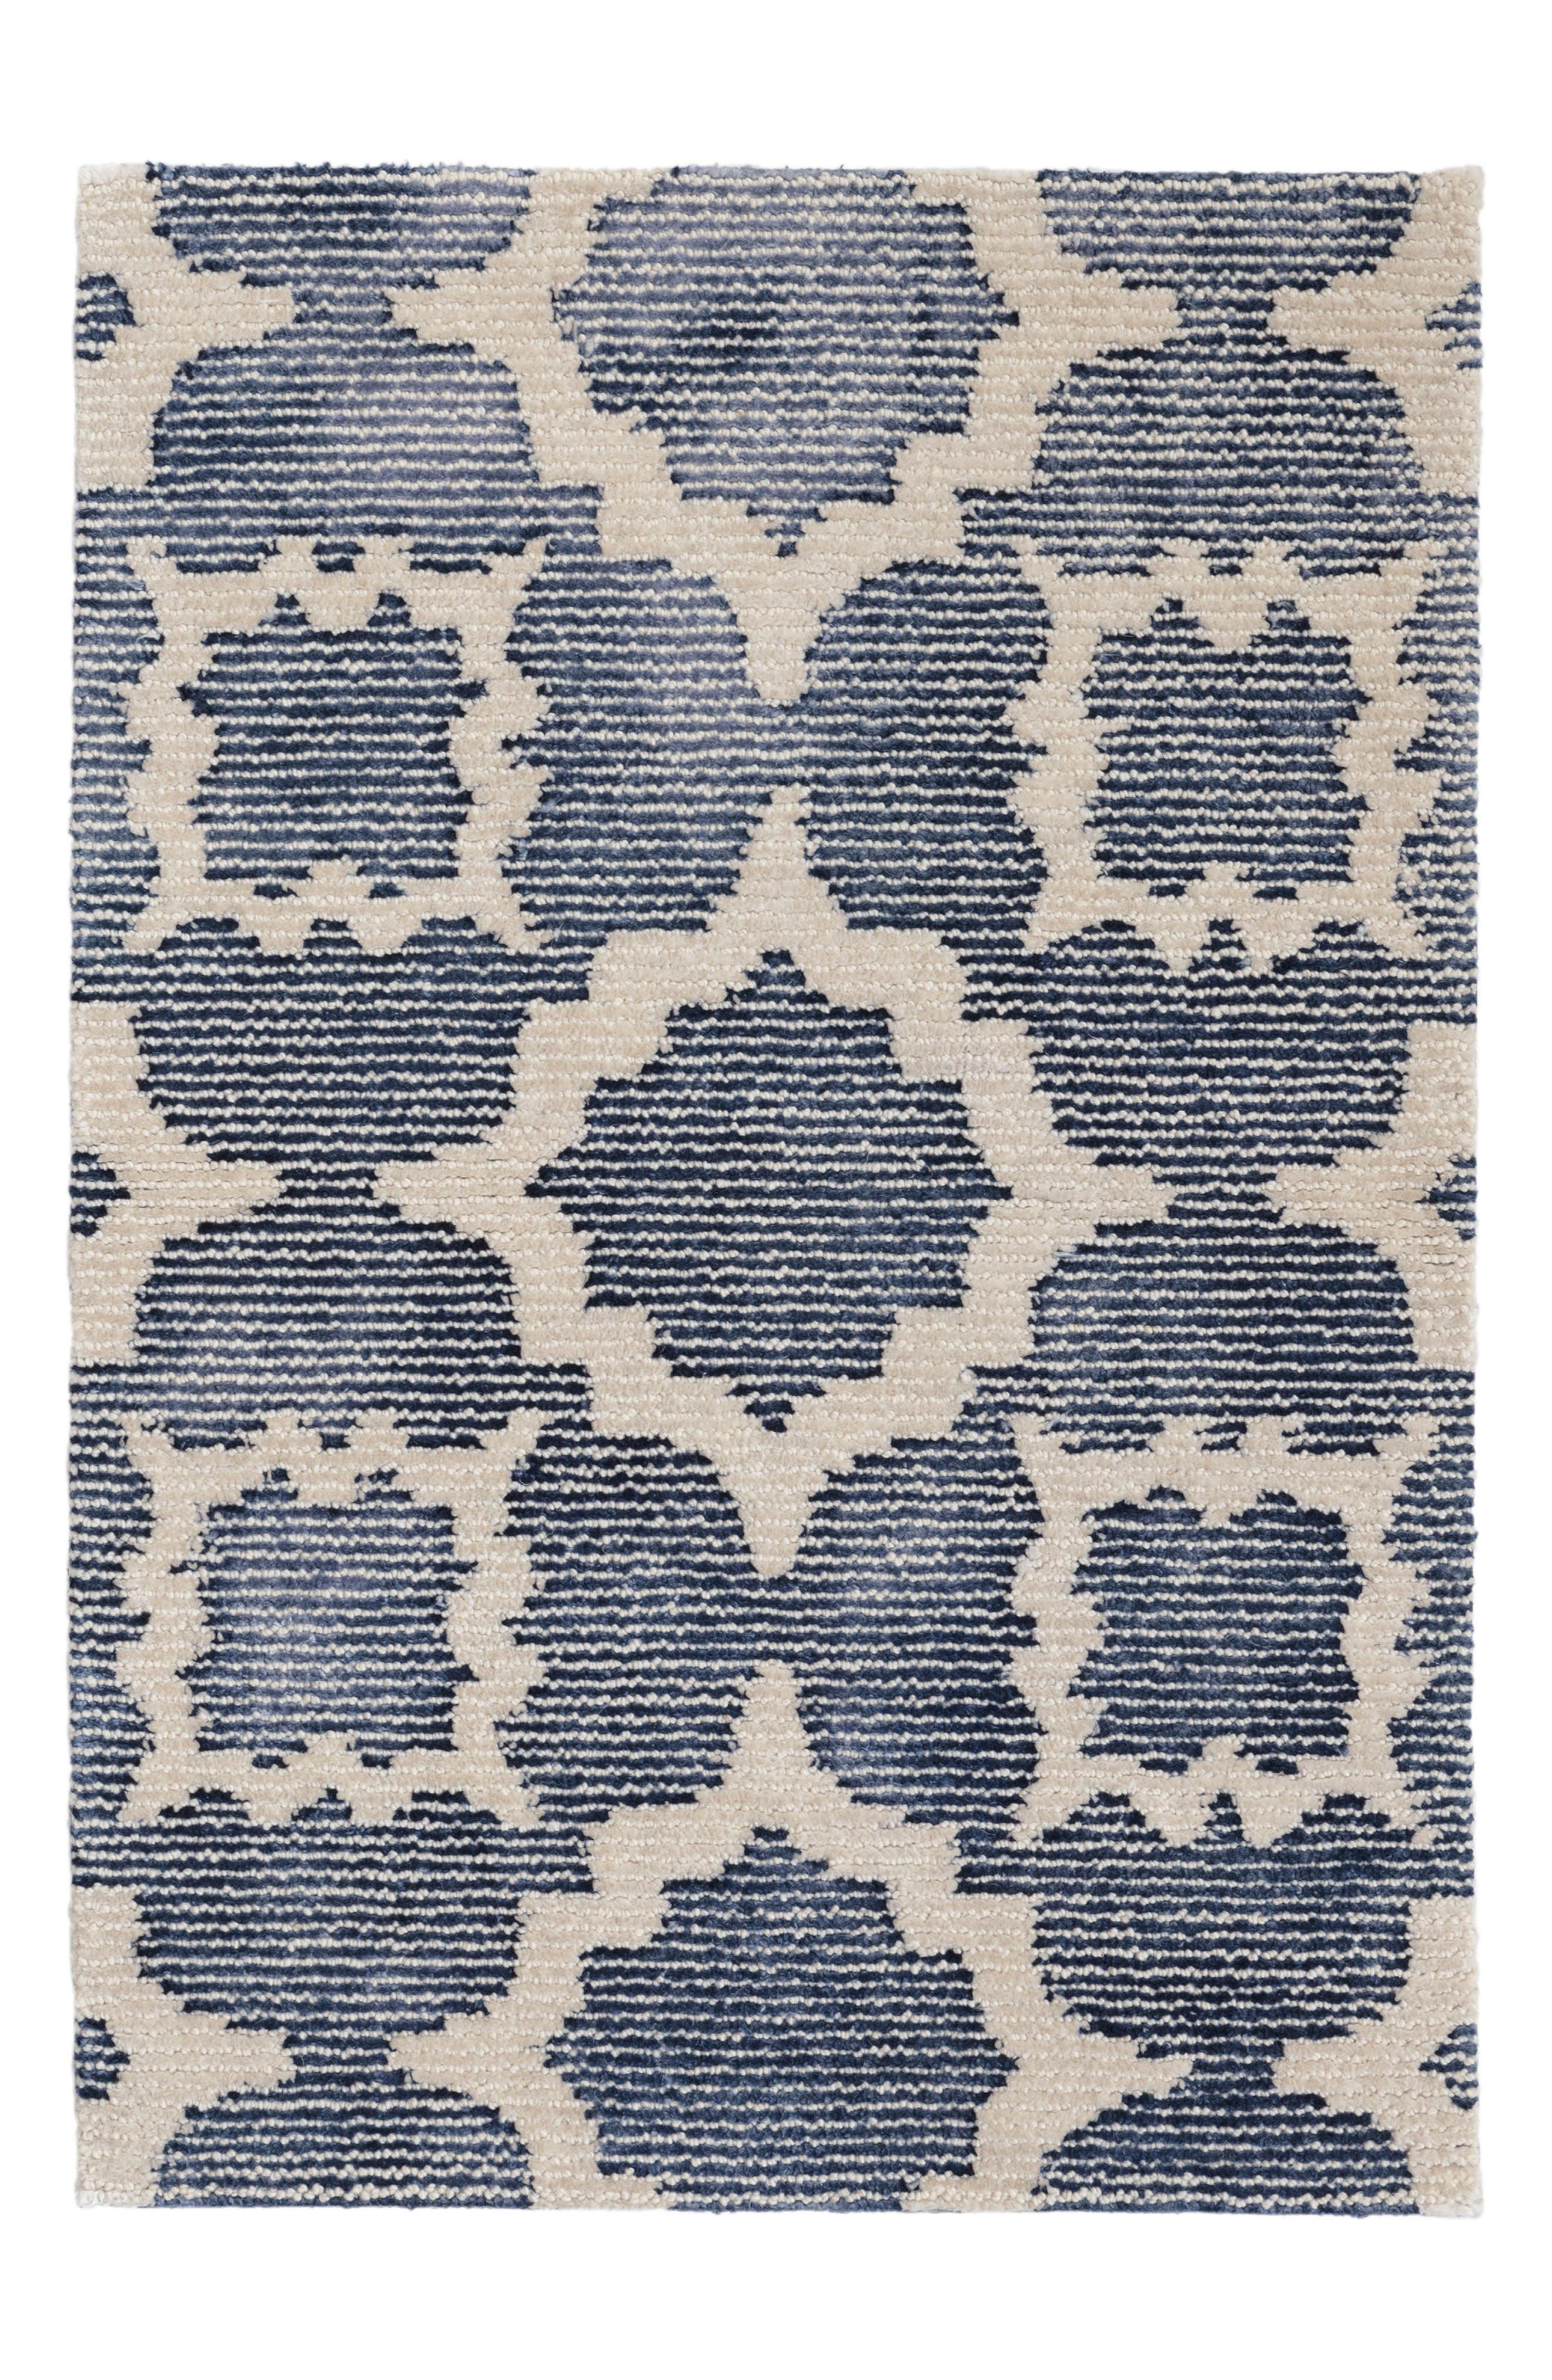 China Hand Knotted Wool Blend Rug,                             Main thumbnail 1, color,                             400